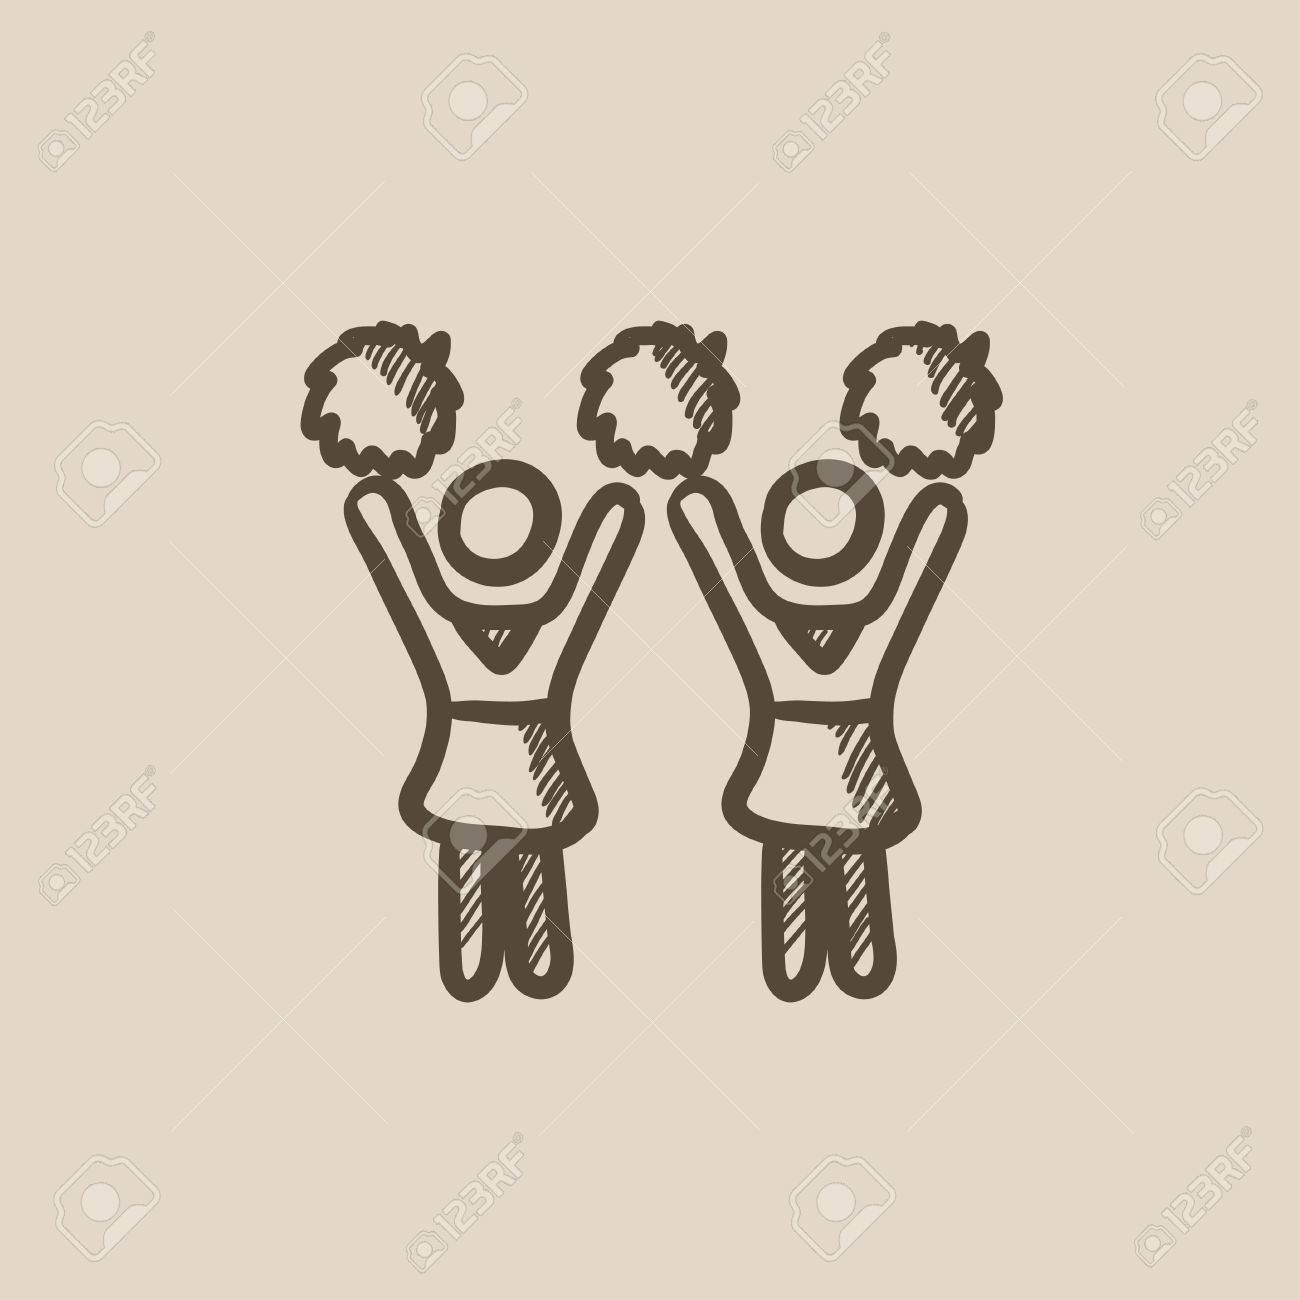 1300x1300 Cheerleaders Vector Sketch Icon Isolated On Background. Hand